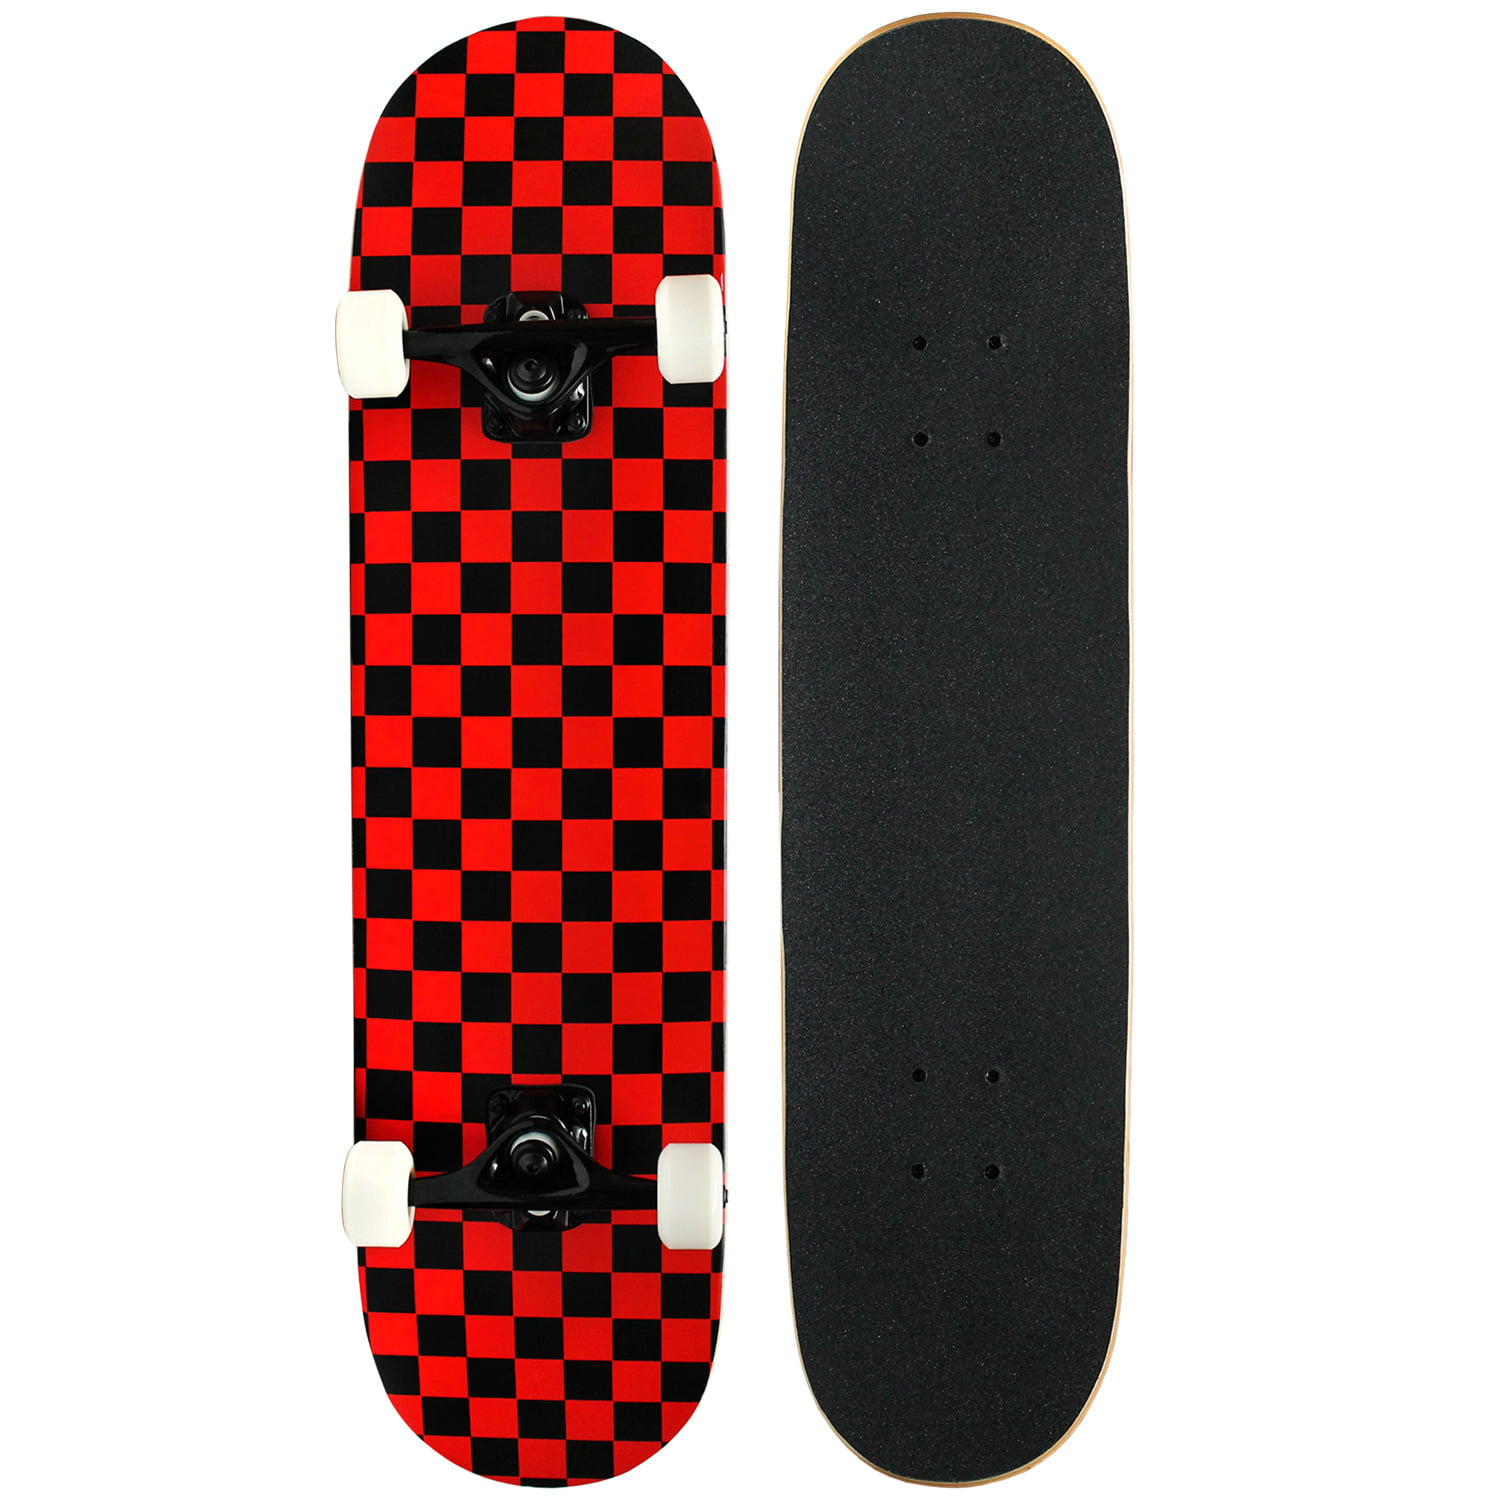 PRO Skateboard Complete Pre-Built CHECKER PATTERN 7.5 in Black Red by